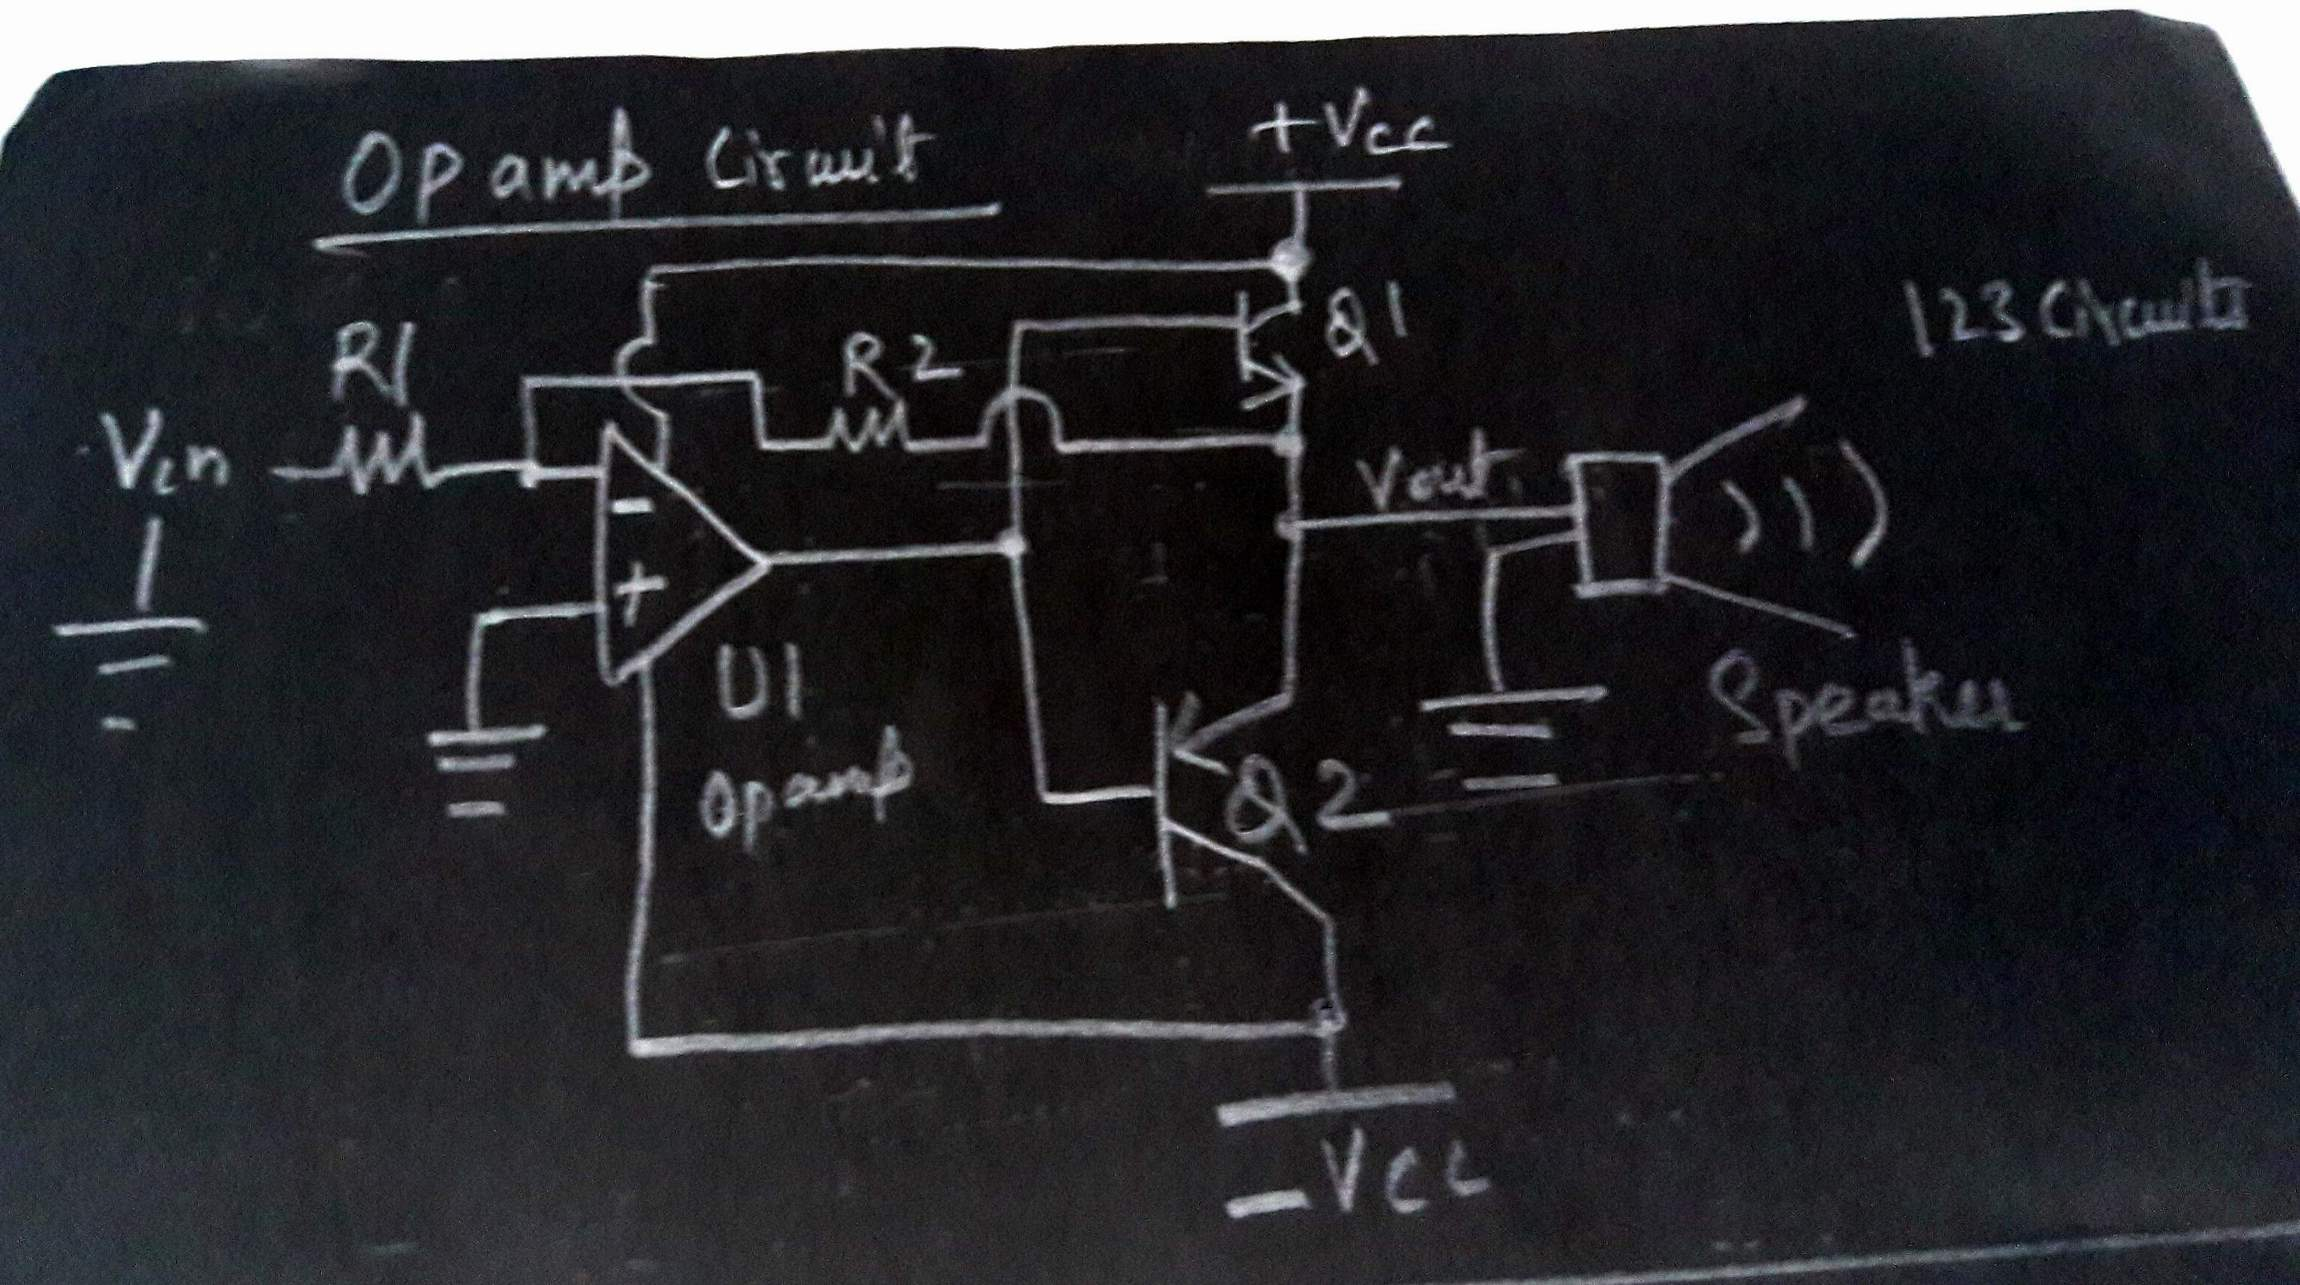 Electronics Circuits Schematics Contract Manufacturers Pcb Transistor Intercom Circuit Electronic And Diagram Op Amp